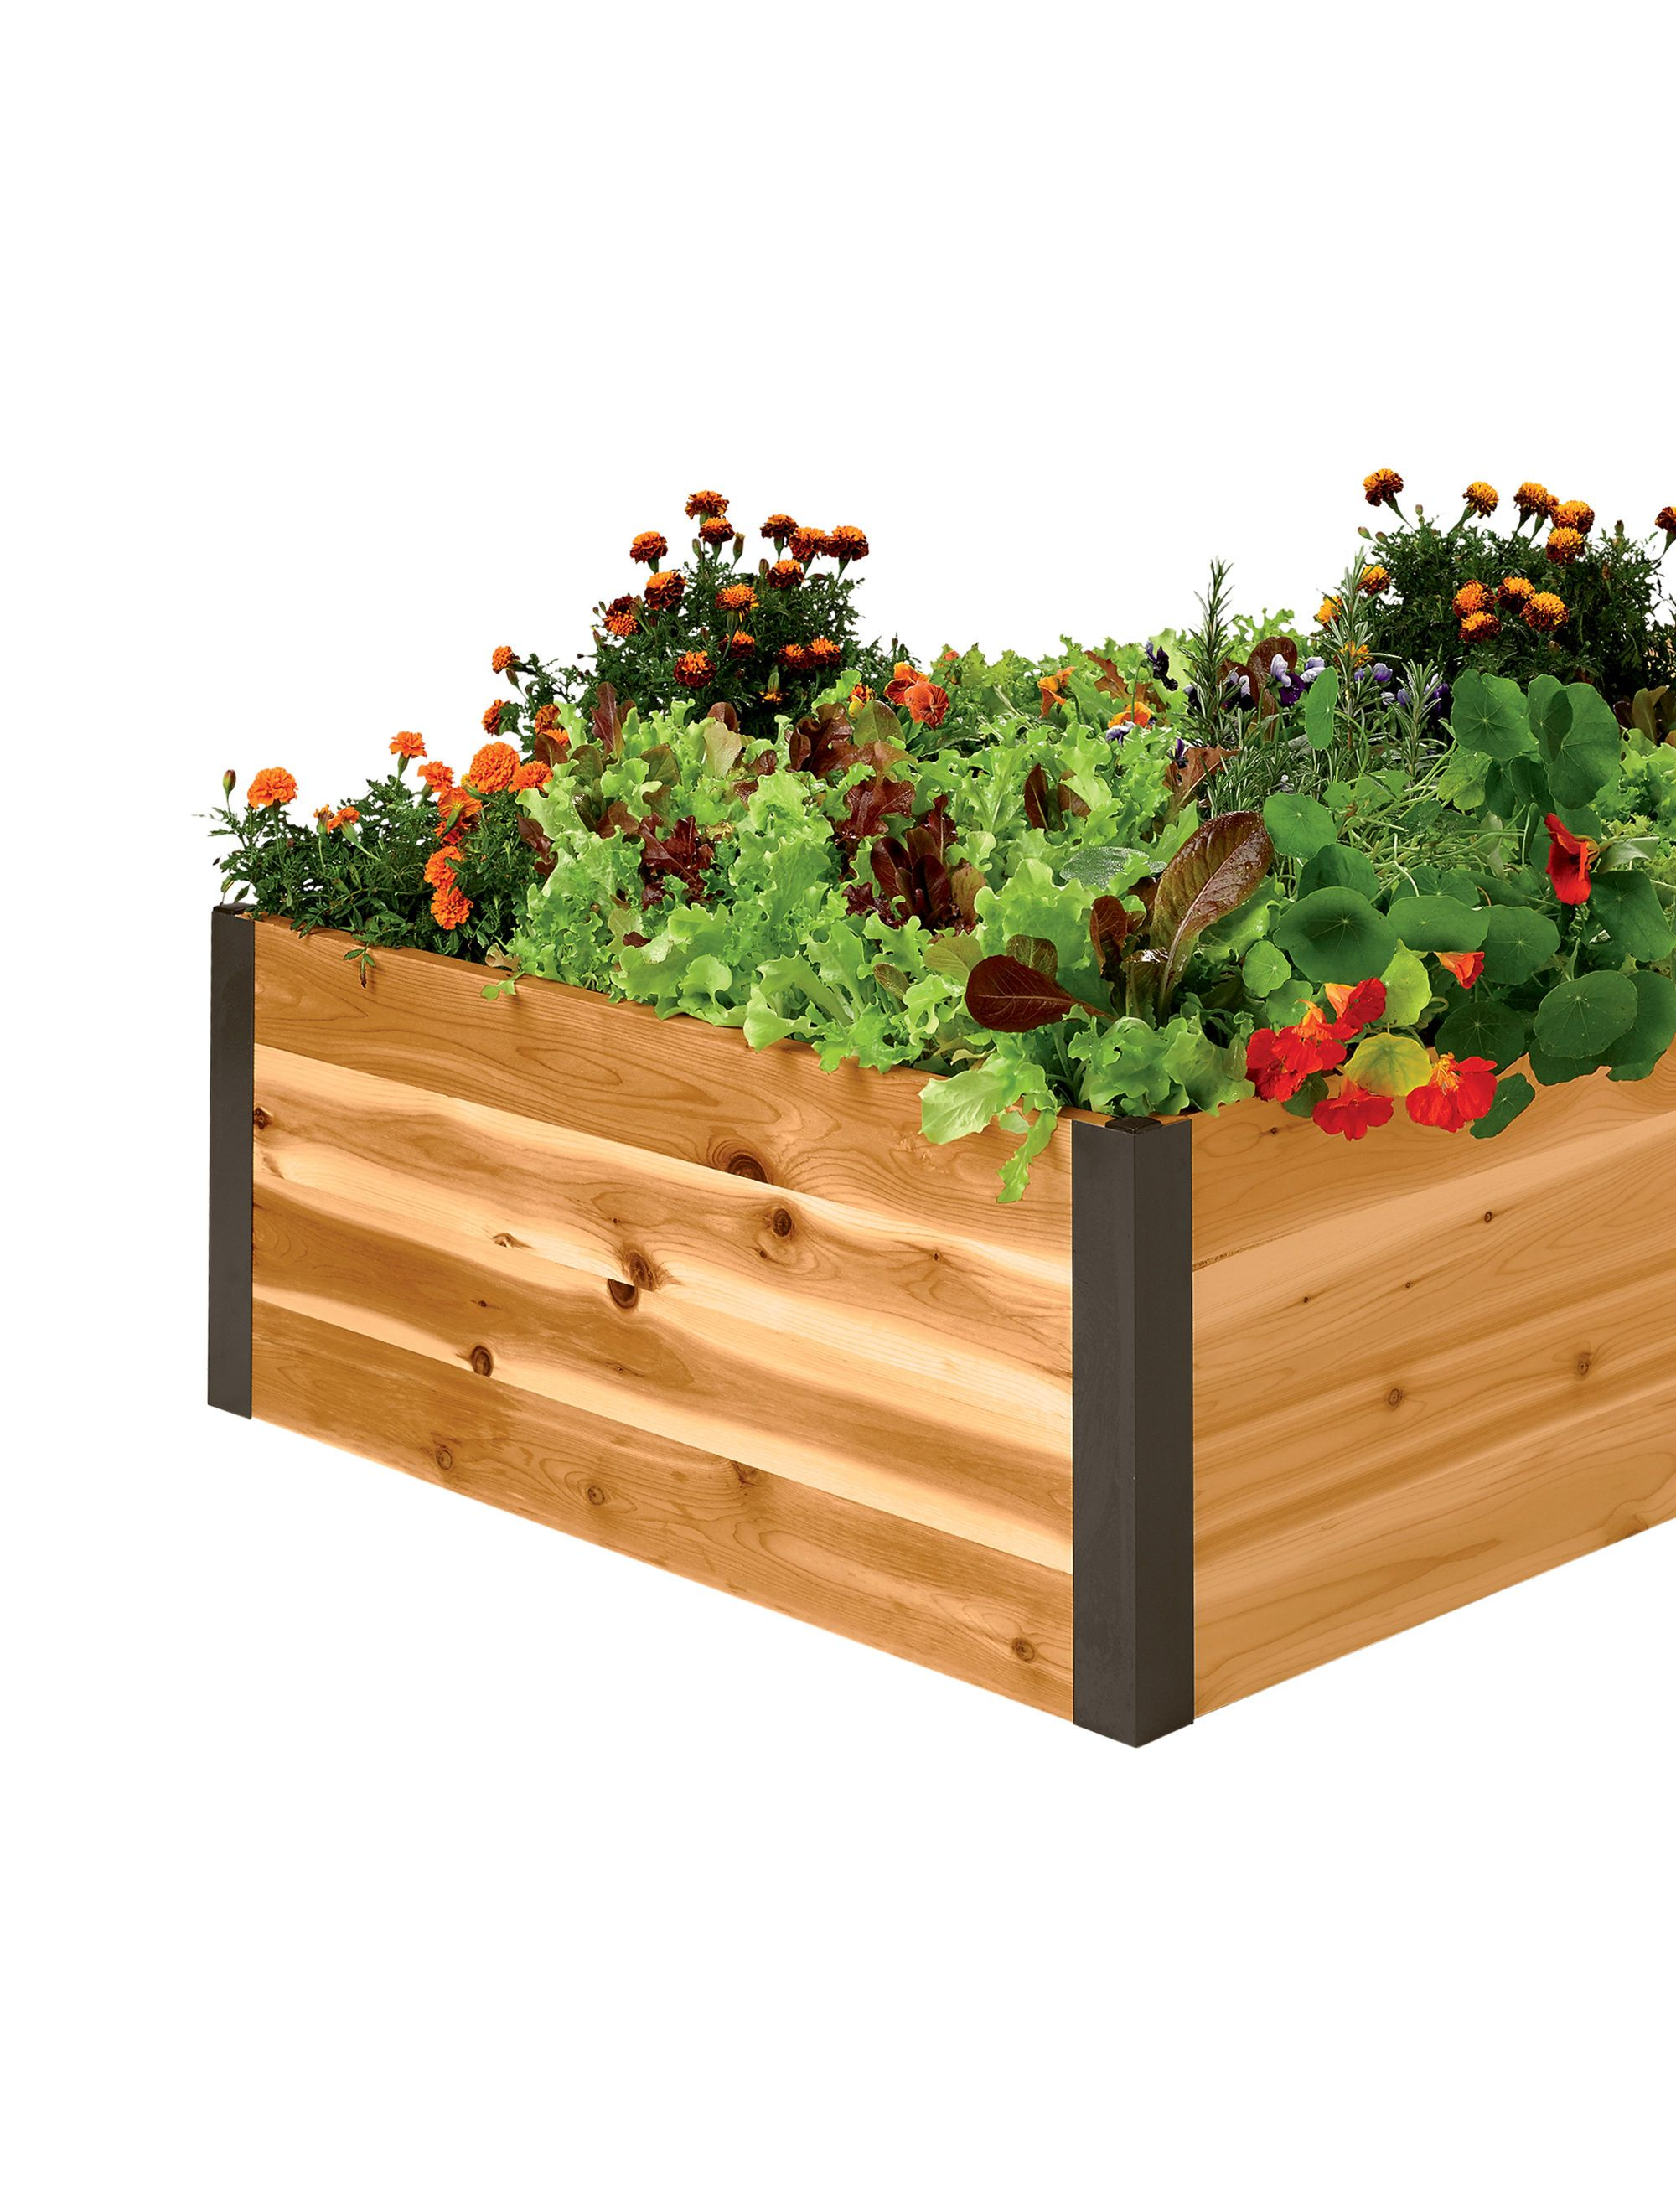 "Cedar Raised Beds 15"" Tall Deep Root Cedar Raised Beds 3"